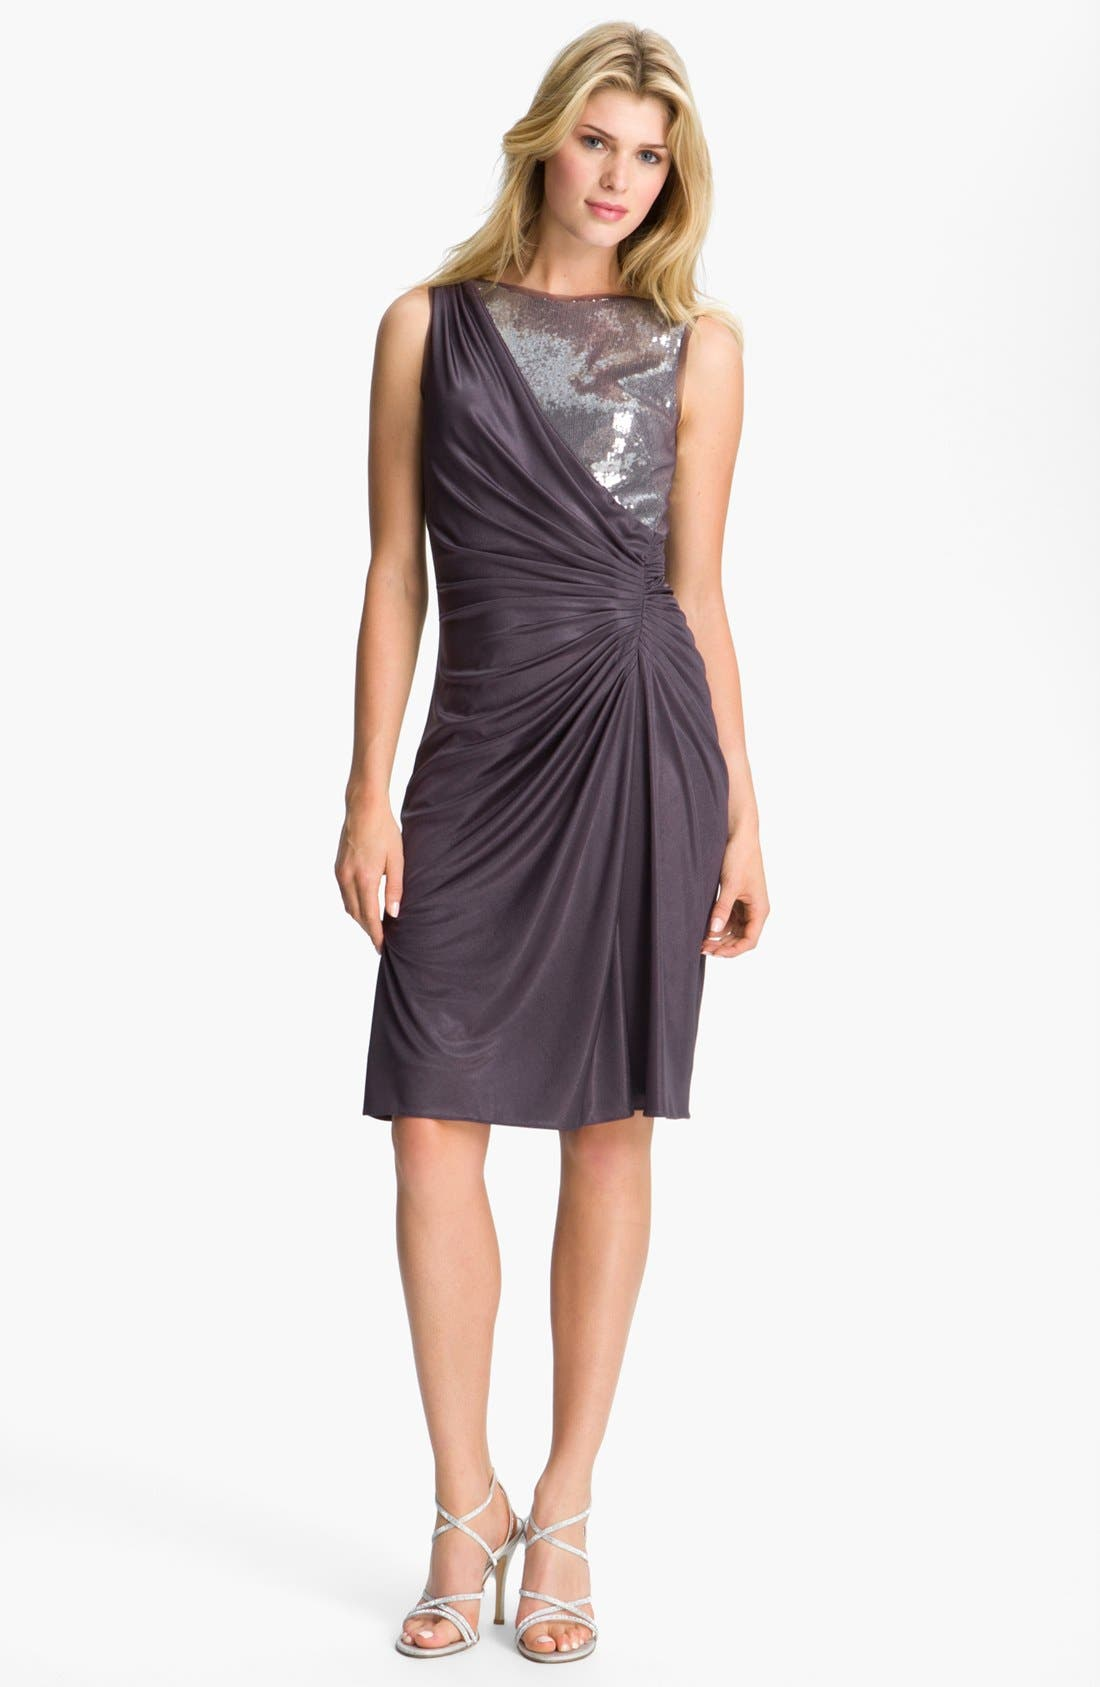 Alternate Image 1 Selected - Adrianna Papell Sequin Jersey Drape Dress (Petite)